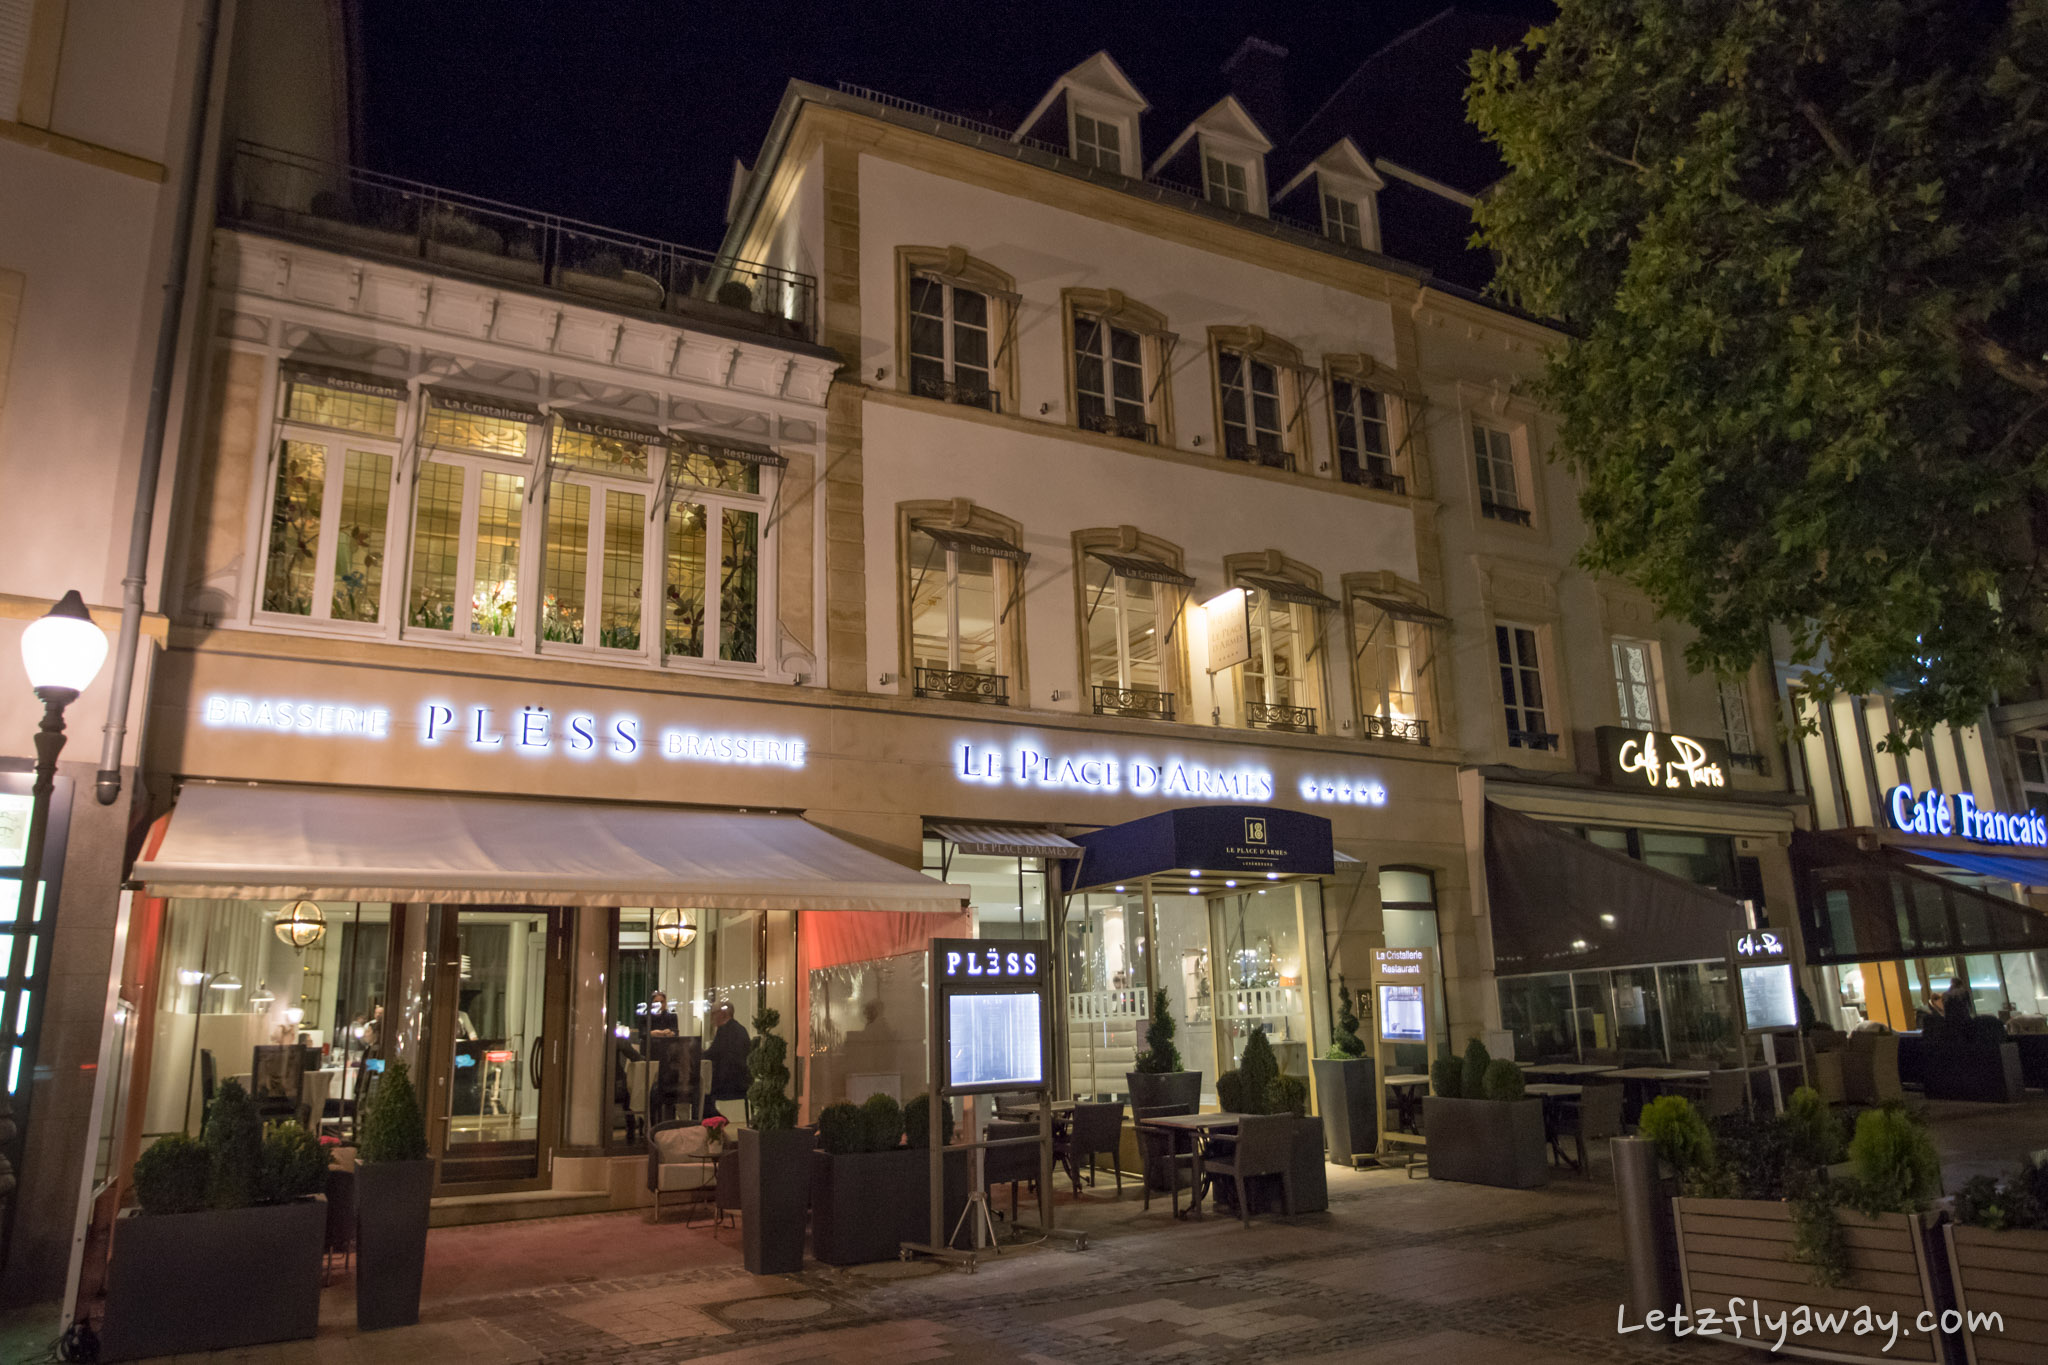 Hotel le place d armes luxembourg the best kept secret for Designhotel luxemburg